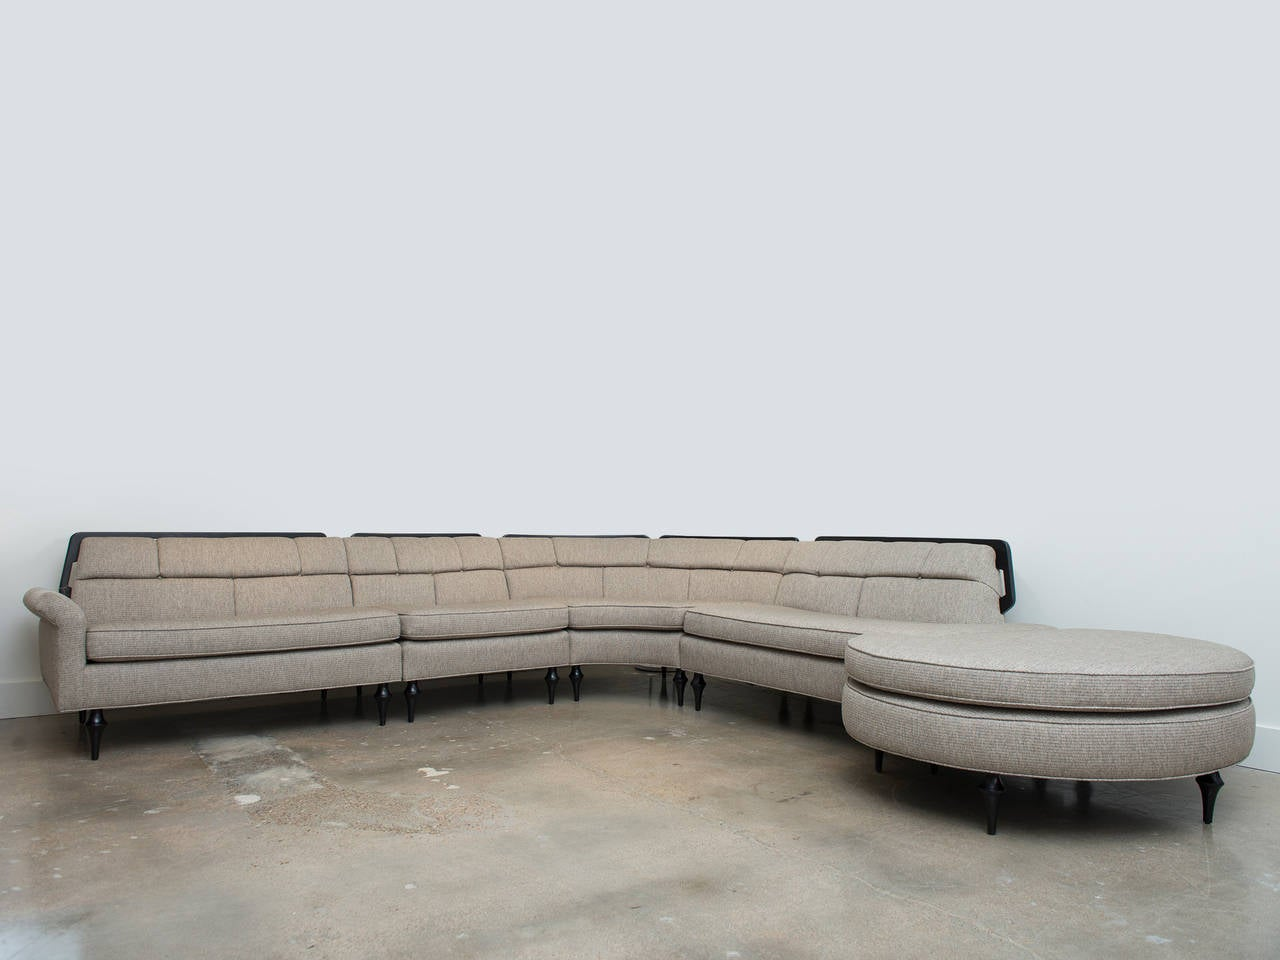 Vintage mid century modern sectional sofa at 1stdibs for Vintage mid century modern sectional sofa